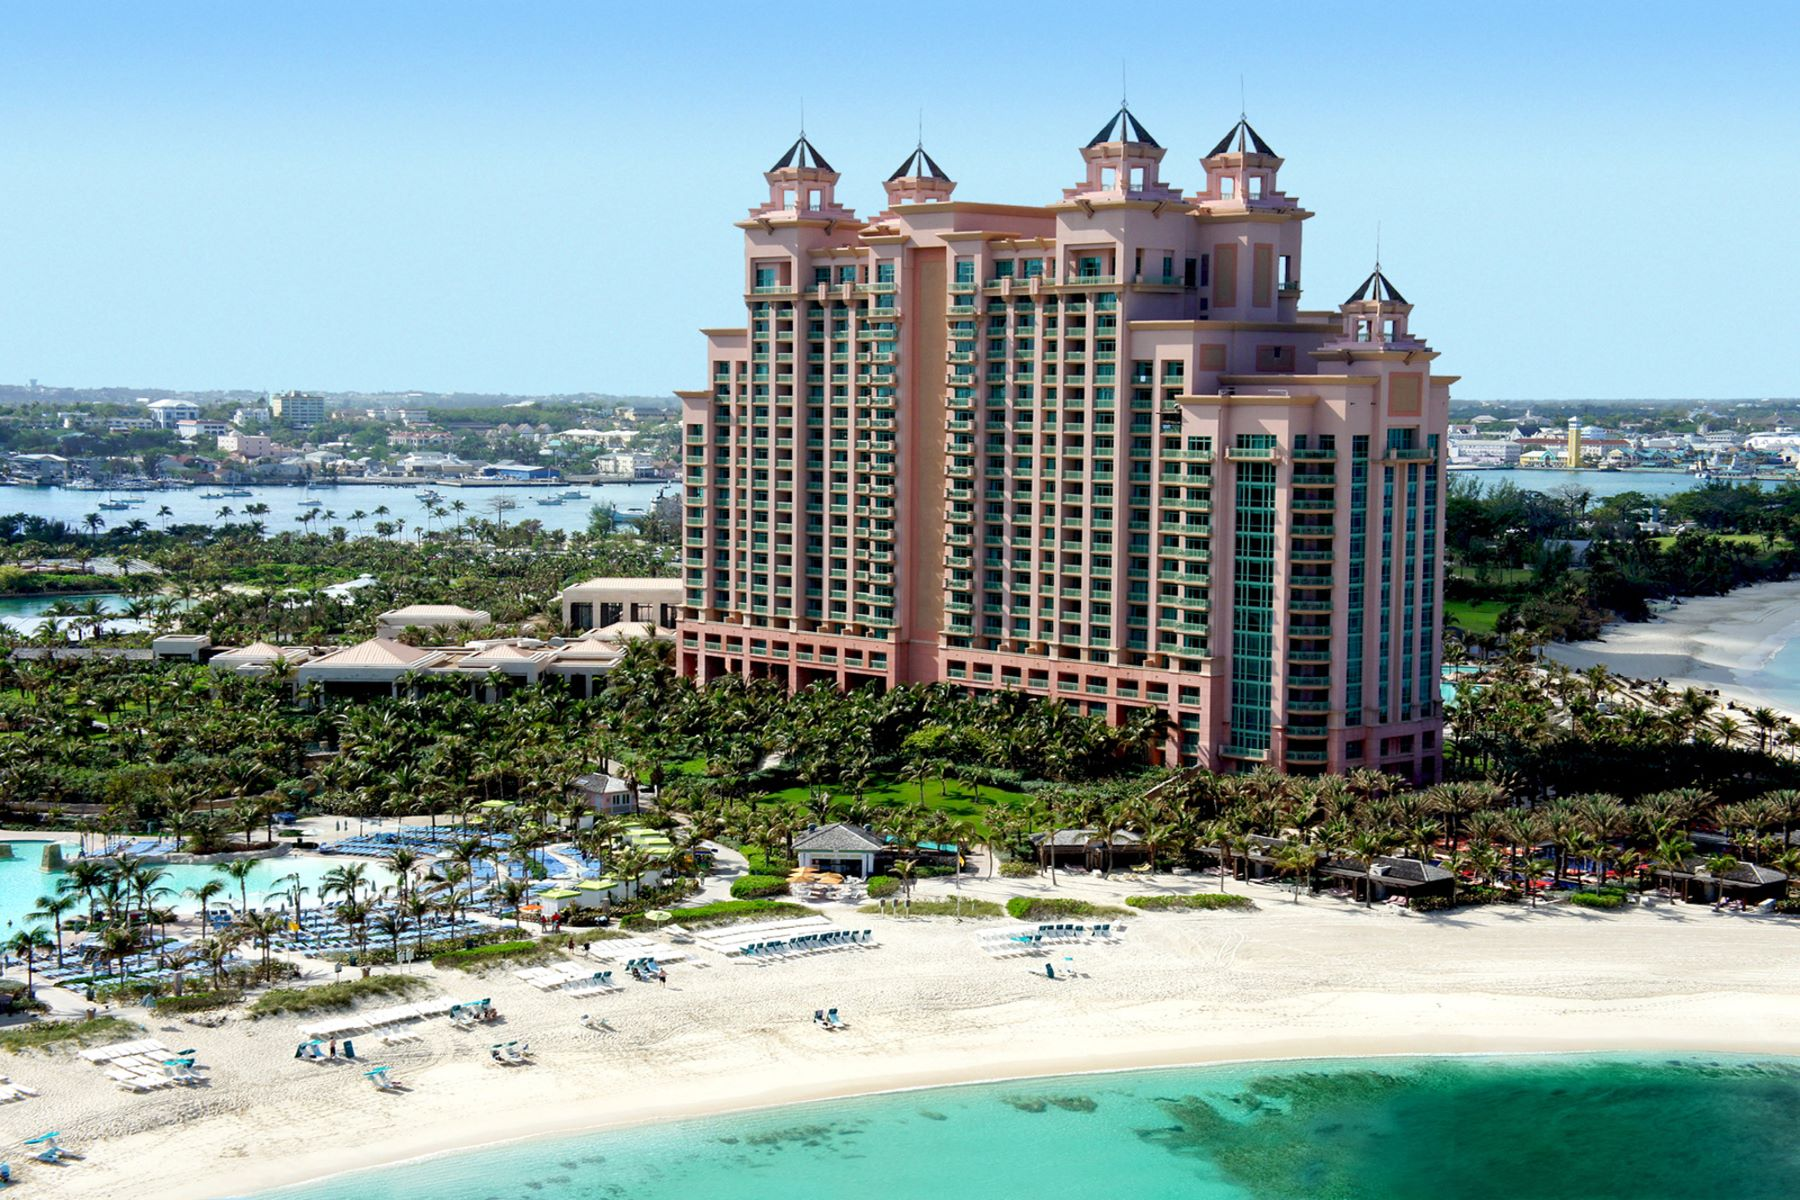 Condominium for Sale at The Reef at Atlantis, 12-925 & 927 Paradise Island, Nassau And Paradise Island Bahamas